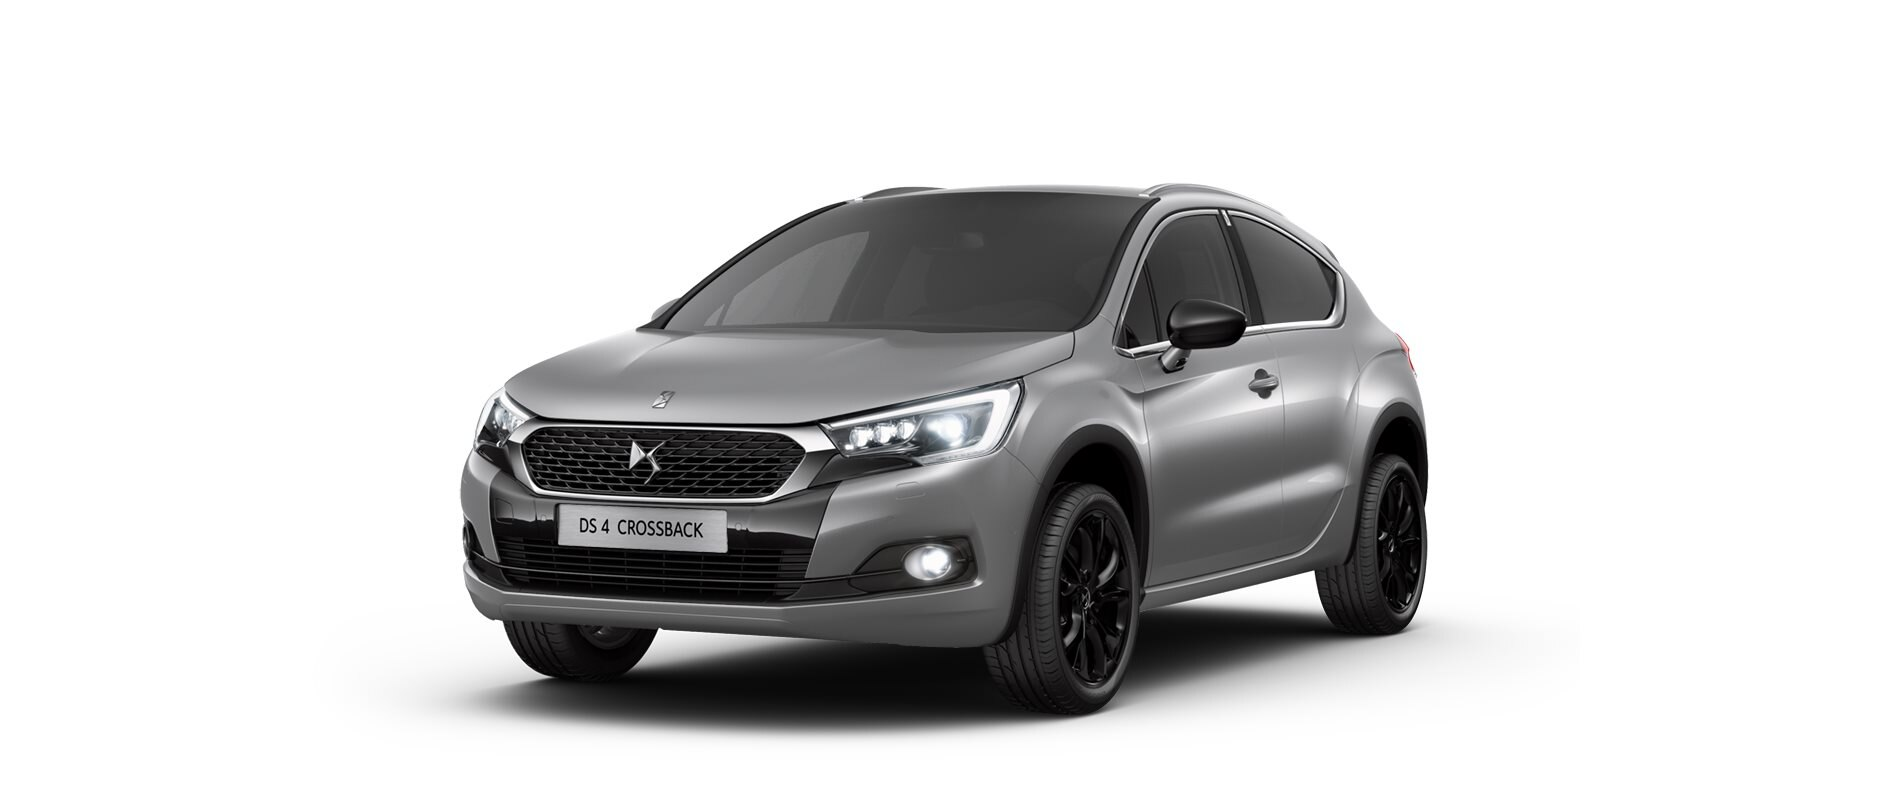 DS 4 Crossback - Artense Grey